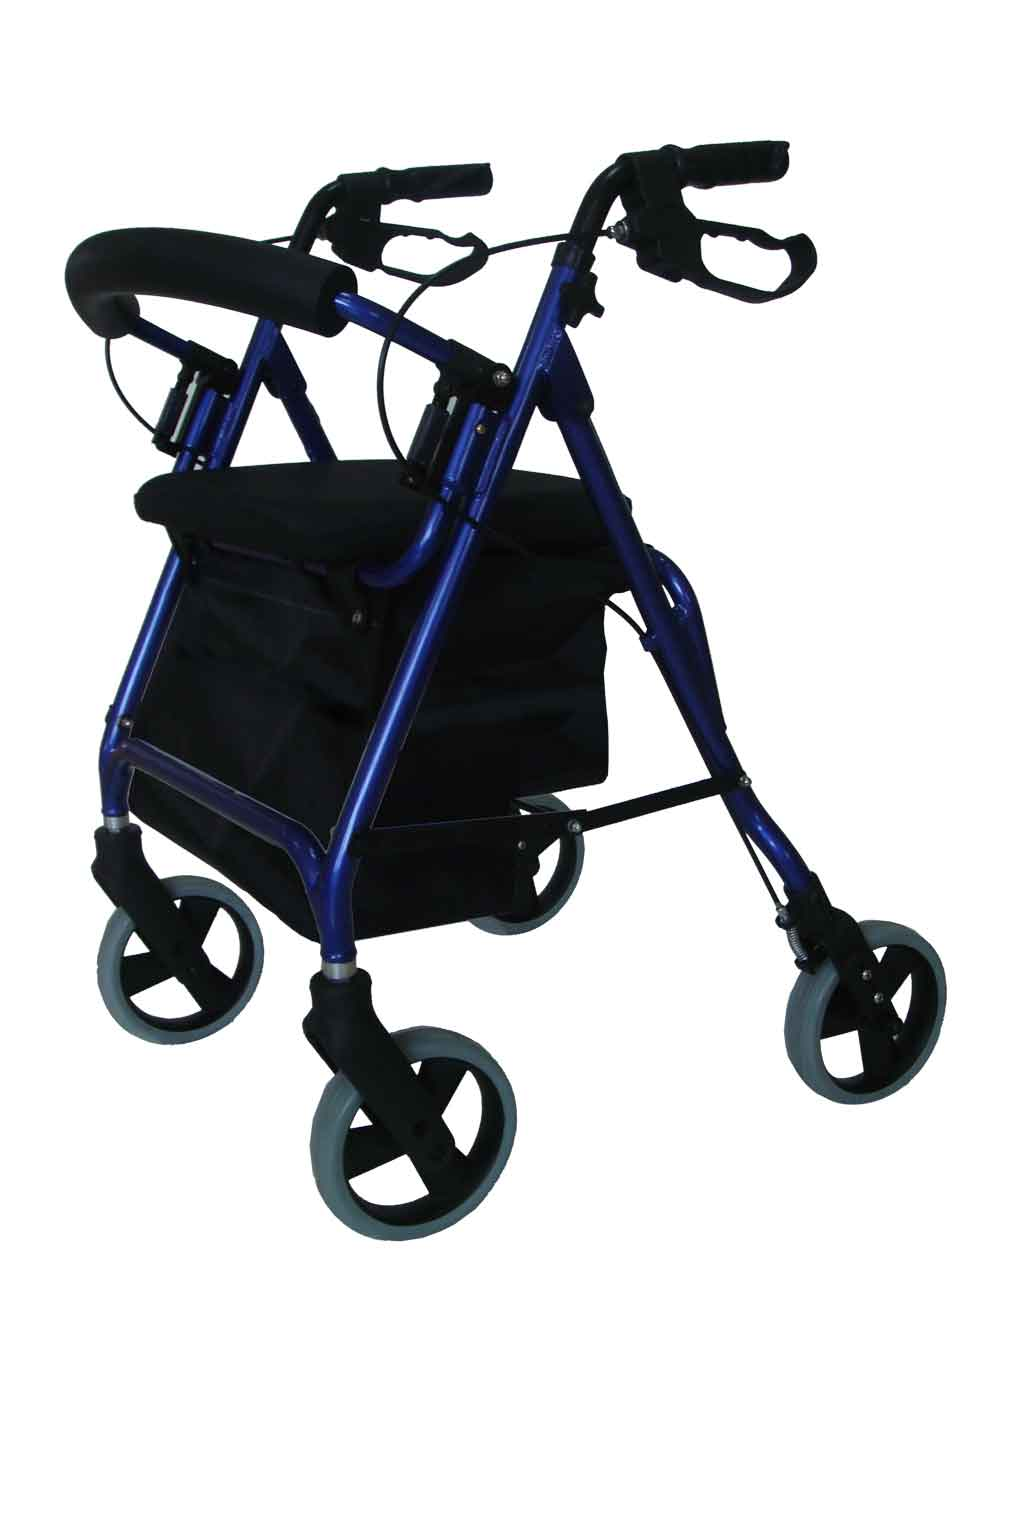 drive duet transport chair rollator, wheeled rollators winston-salem nc, probasics rollators, drive medical duet transport chair rollator